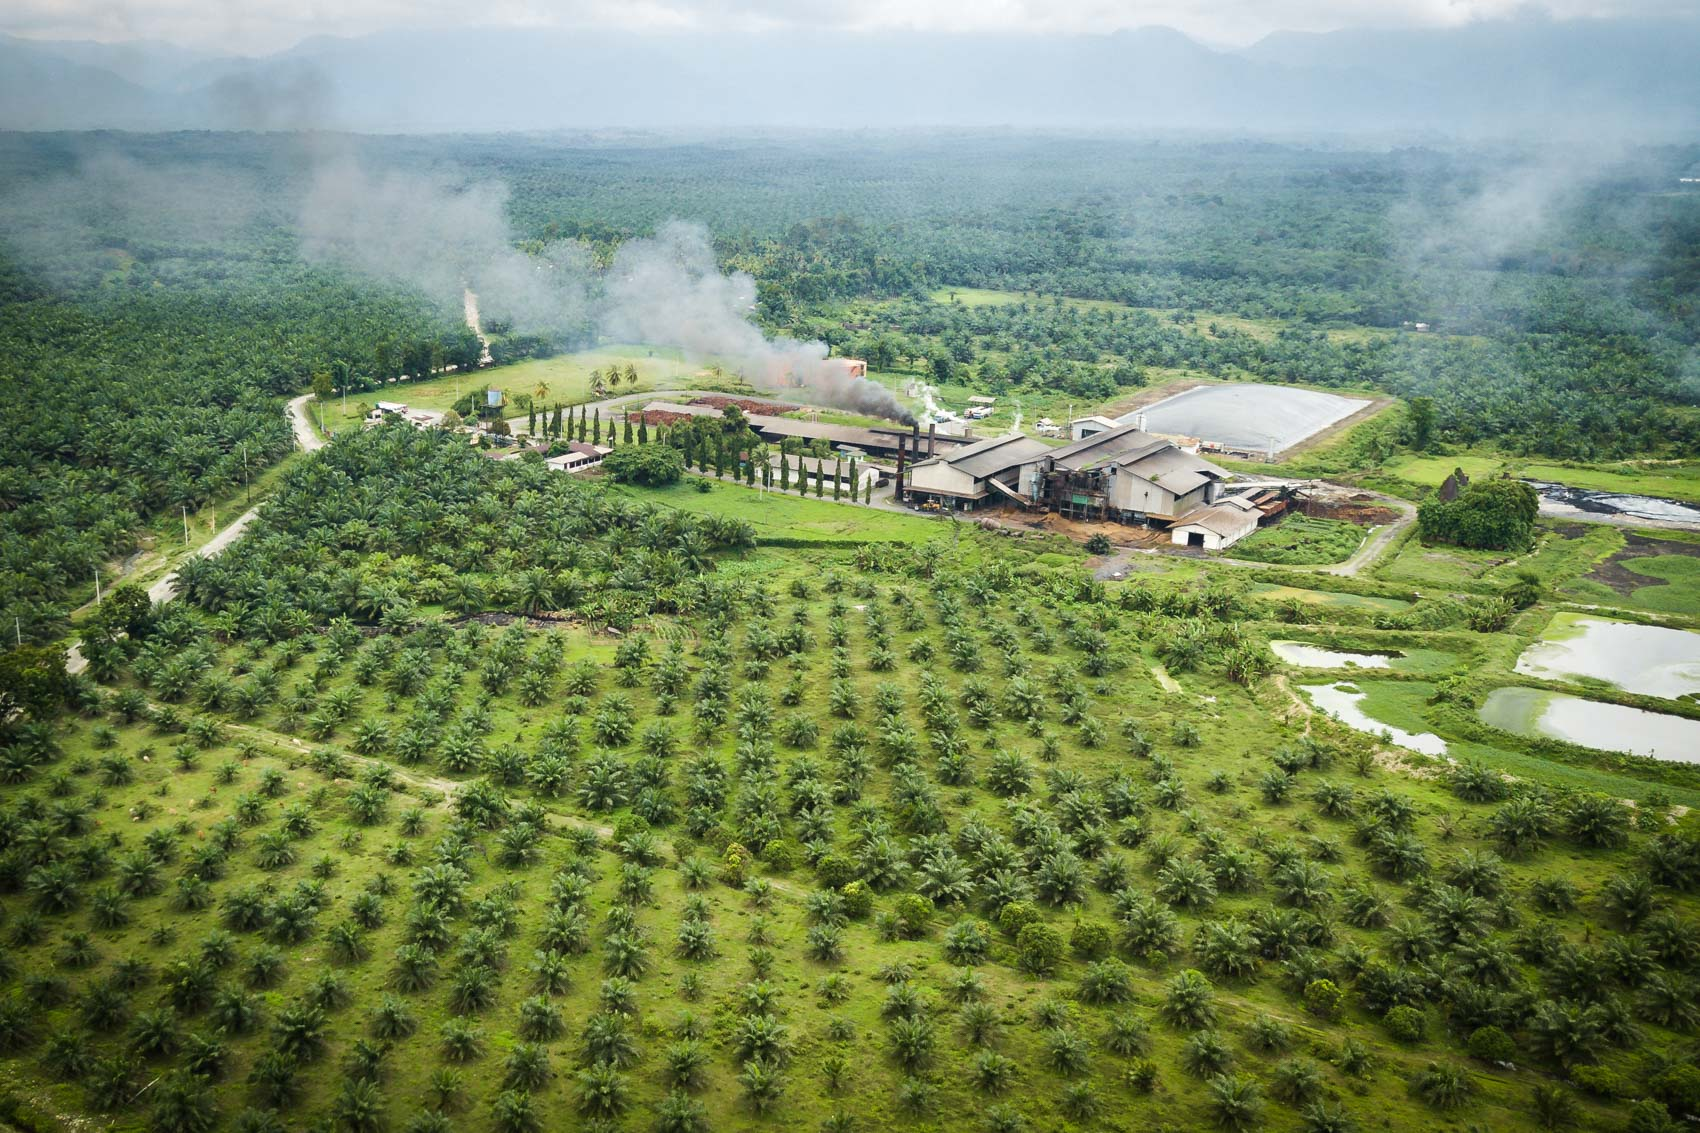 Aerial view of a palm oil extraction mill in Northern Sumatra, Indonesia © David Coulson conservation photojournalist